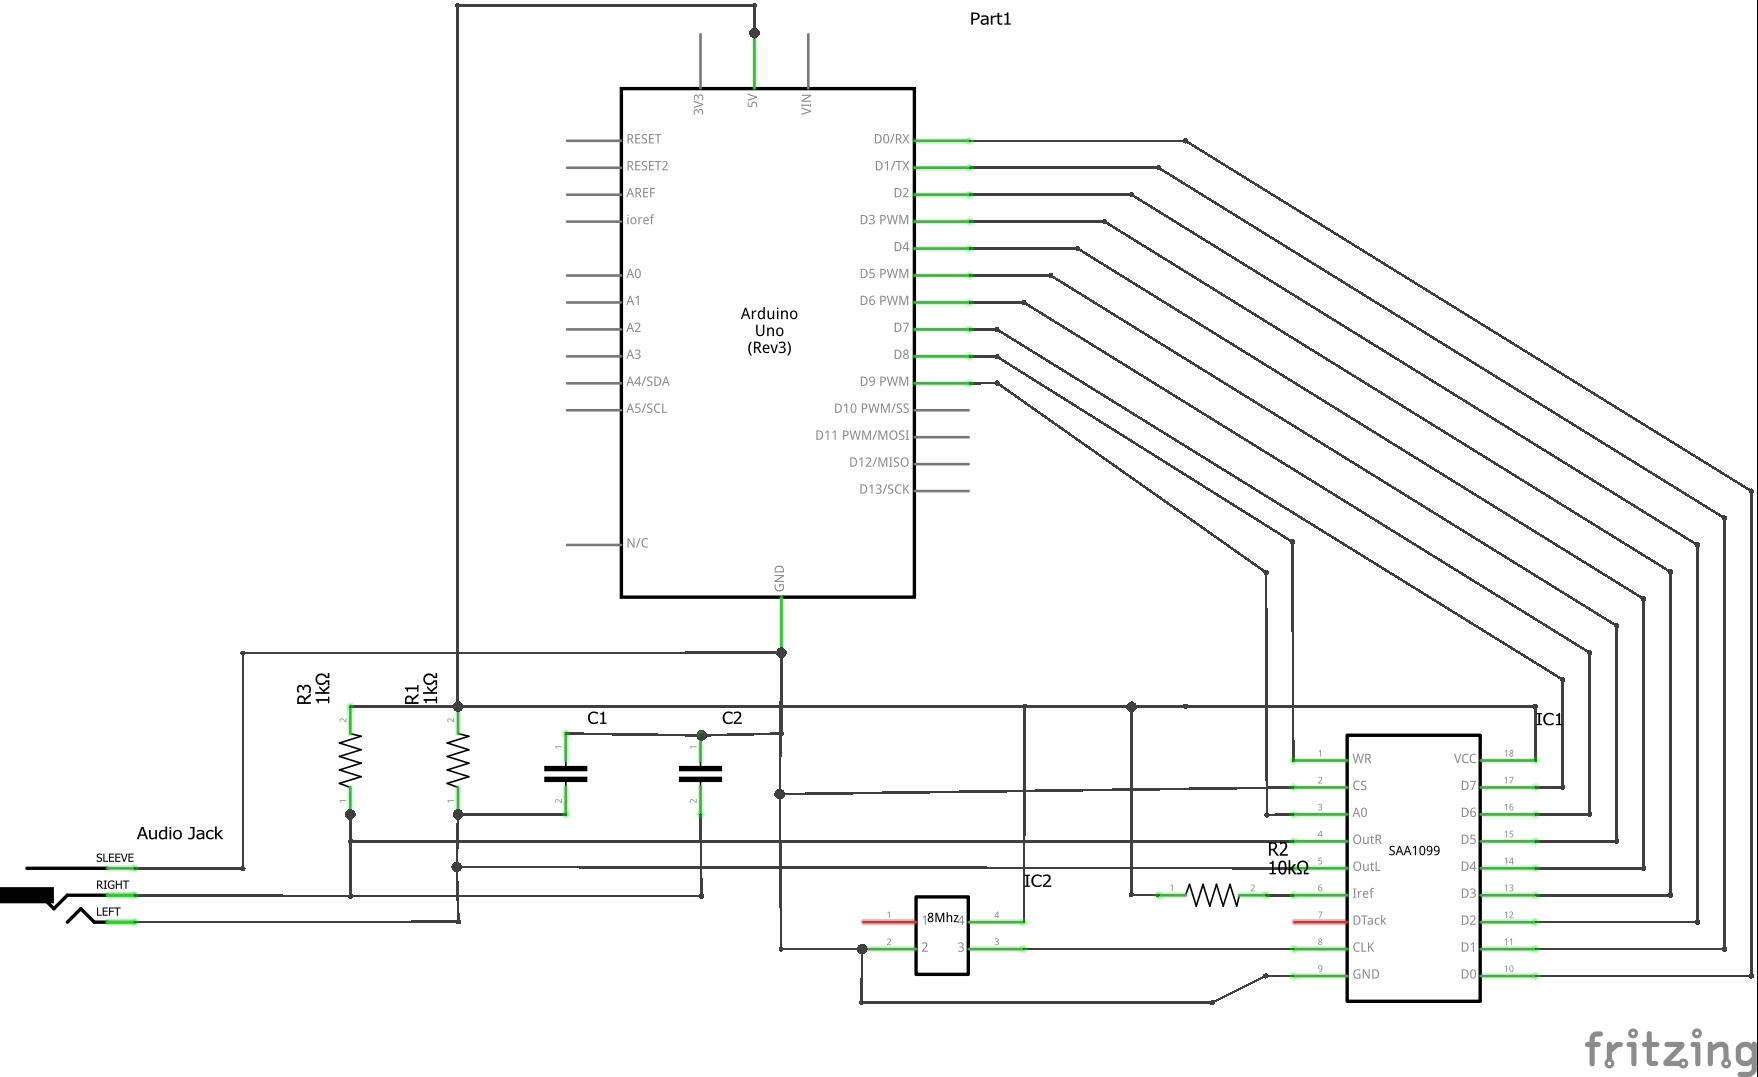 Picture of Wiring - SAA1099